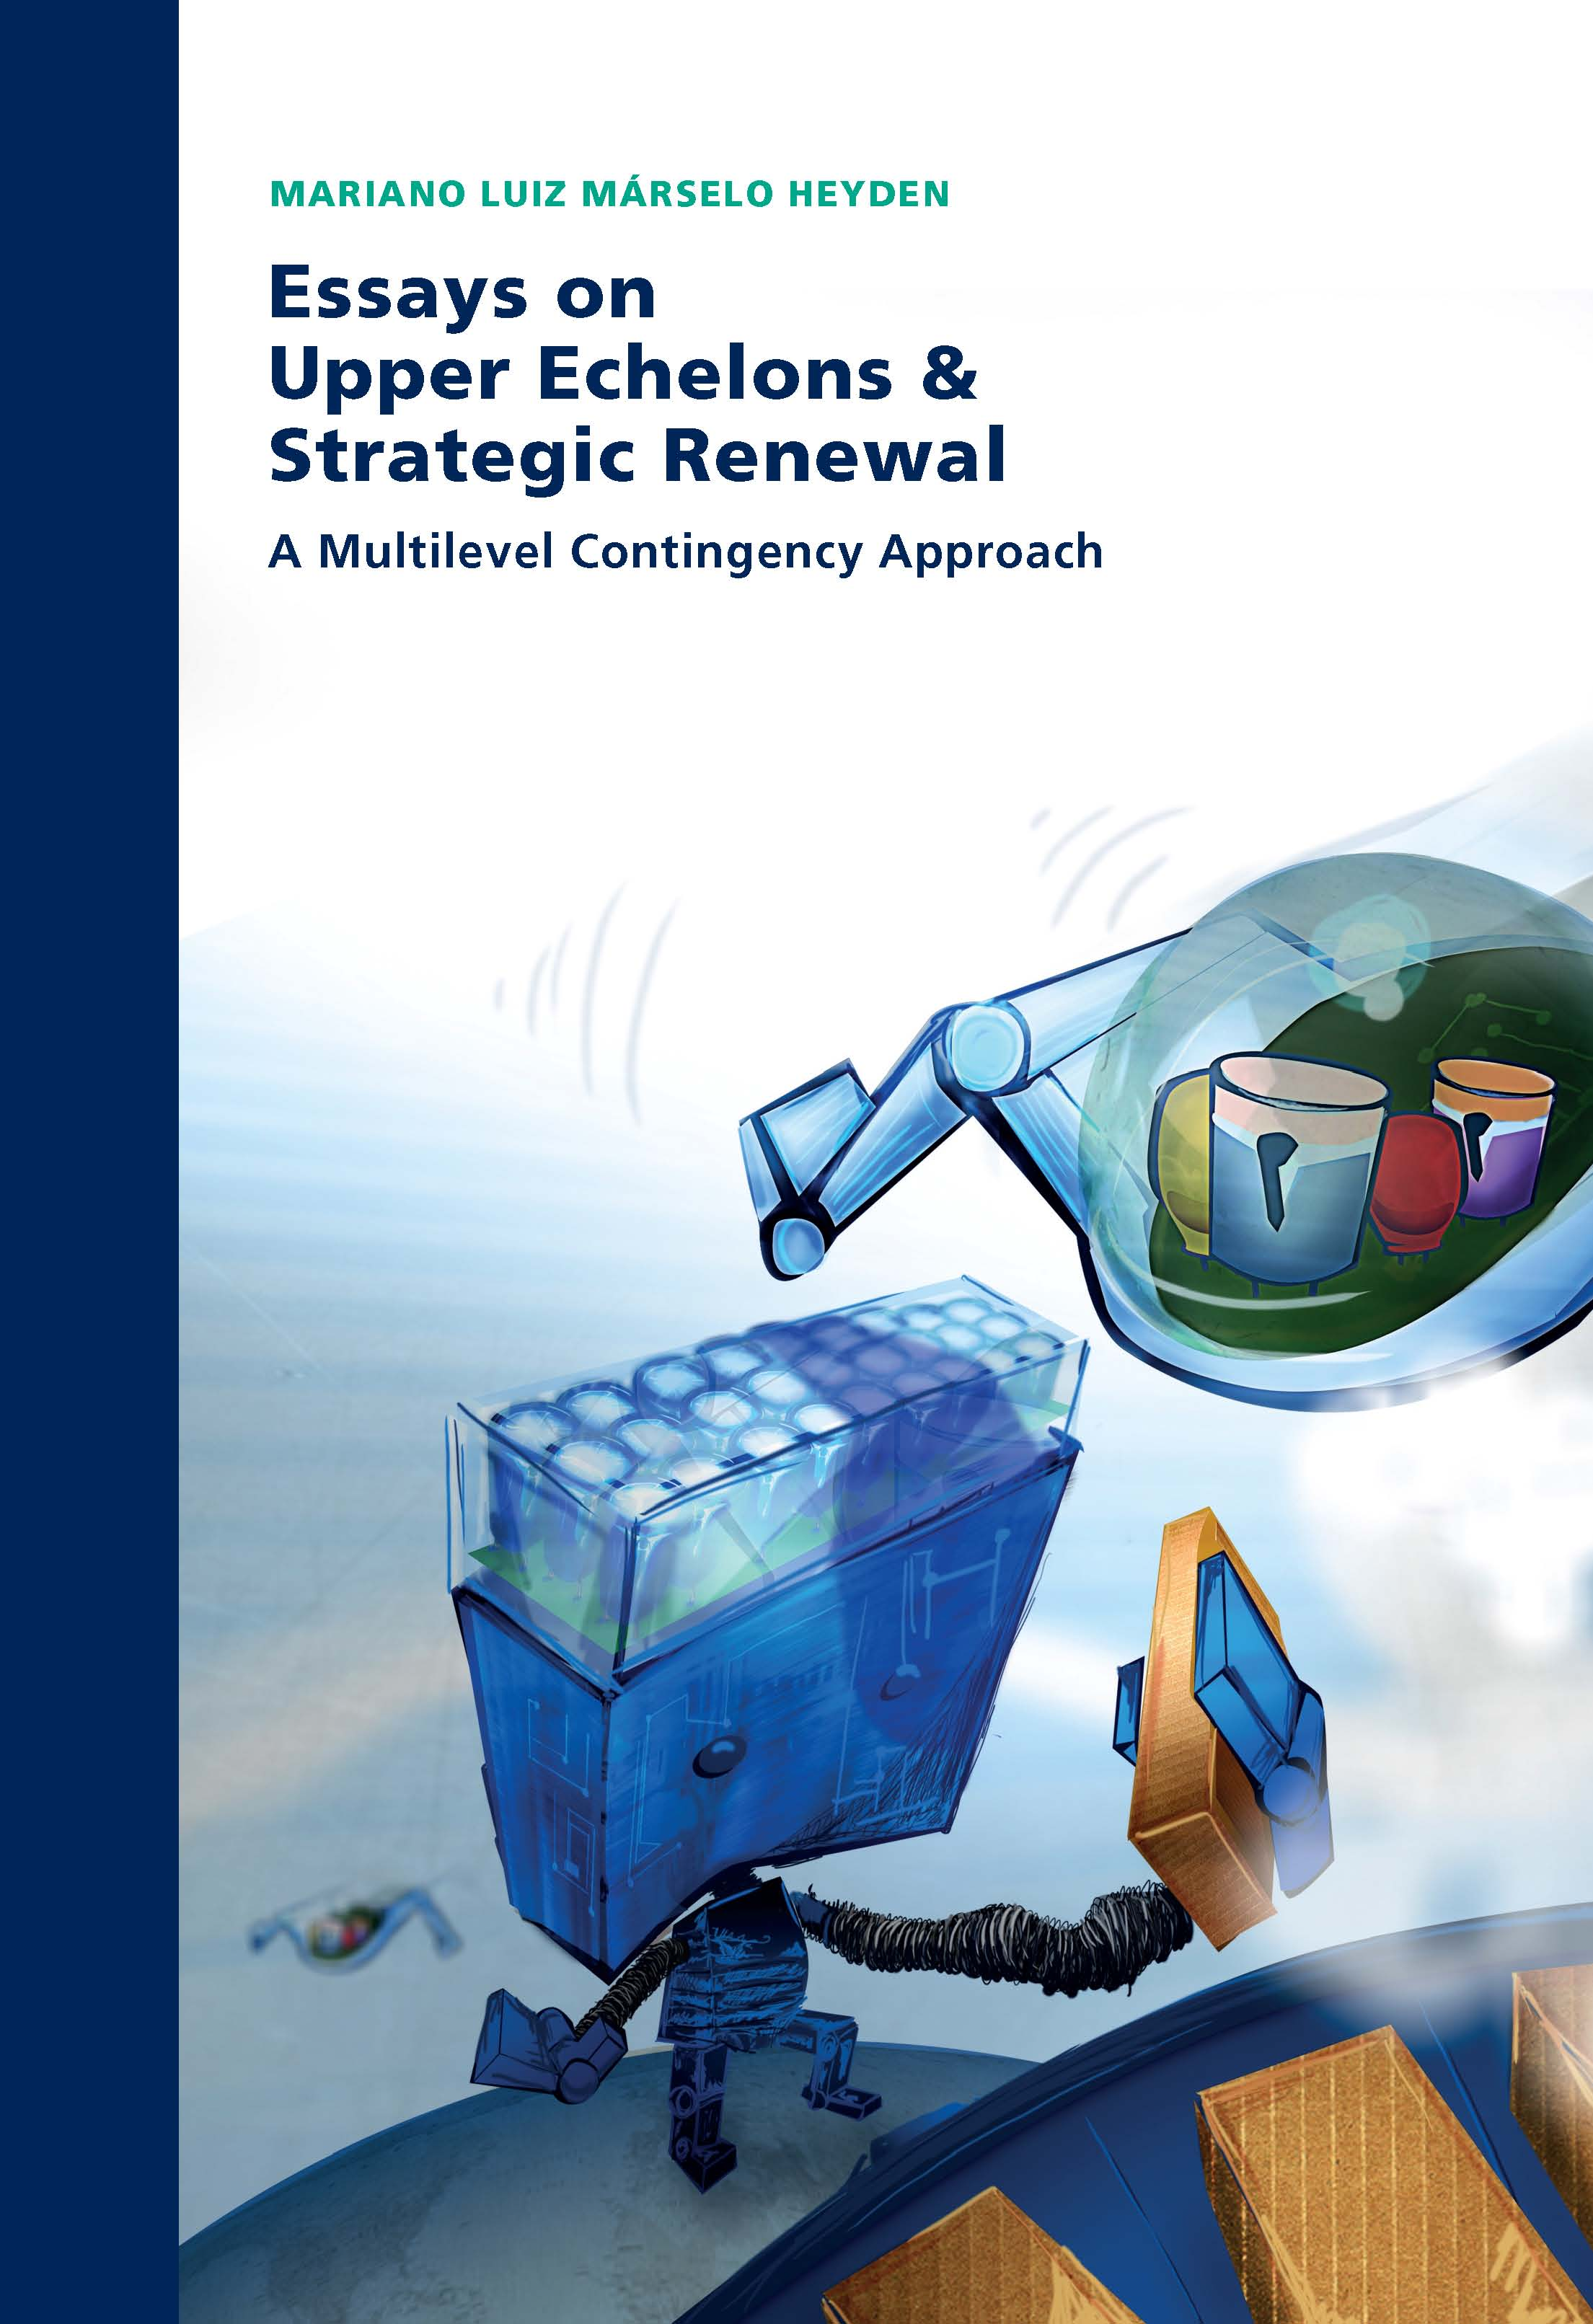 Essays on Upper Echelons & Strategic Renewal: A Multilevel Contingency Approach